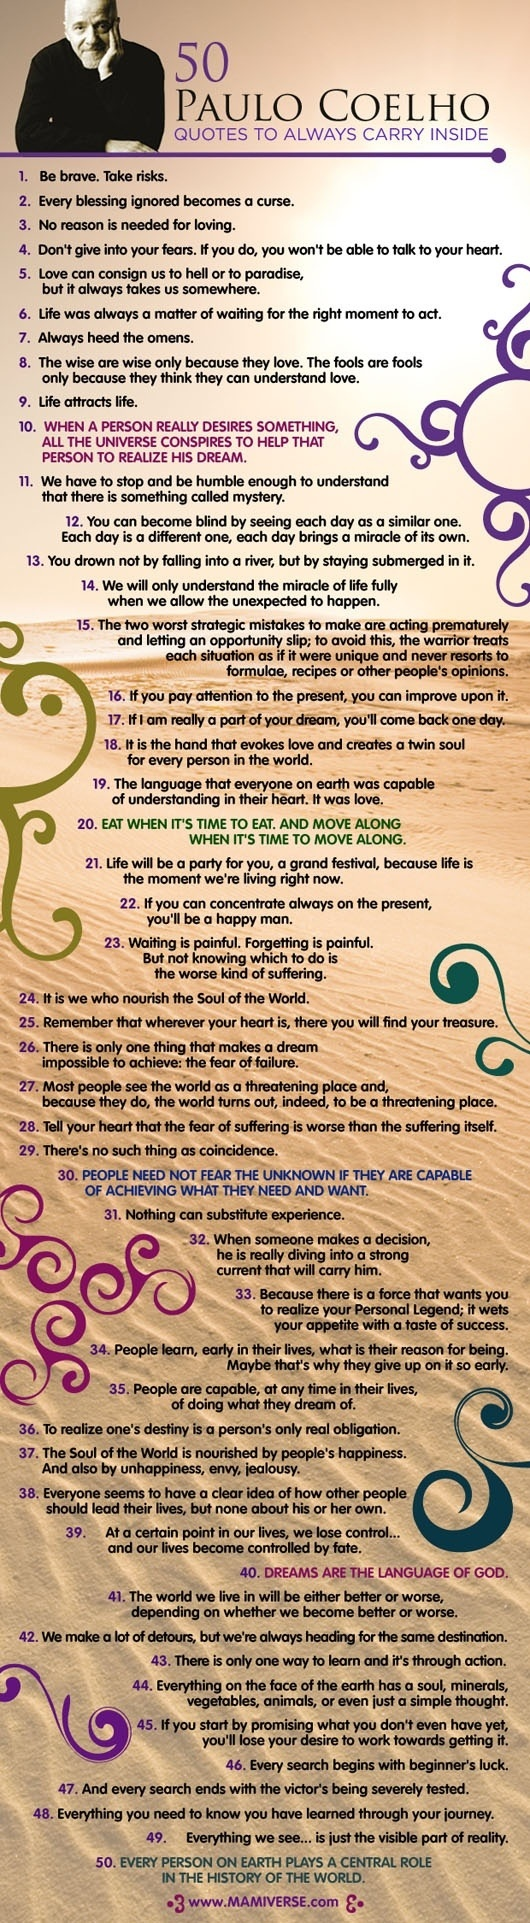 50 paulo coelho quotes for the soul dusty ranft elephant journal source infographicaday com via john kremer